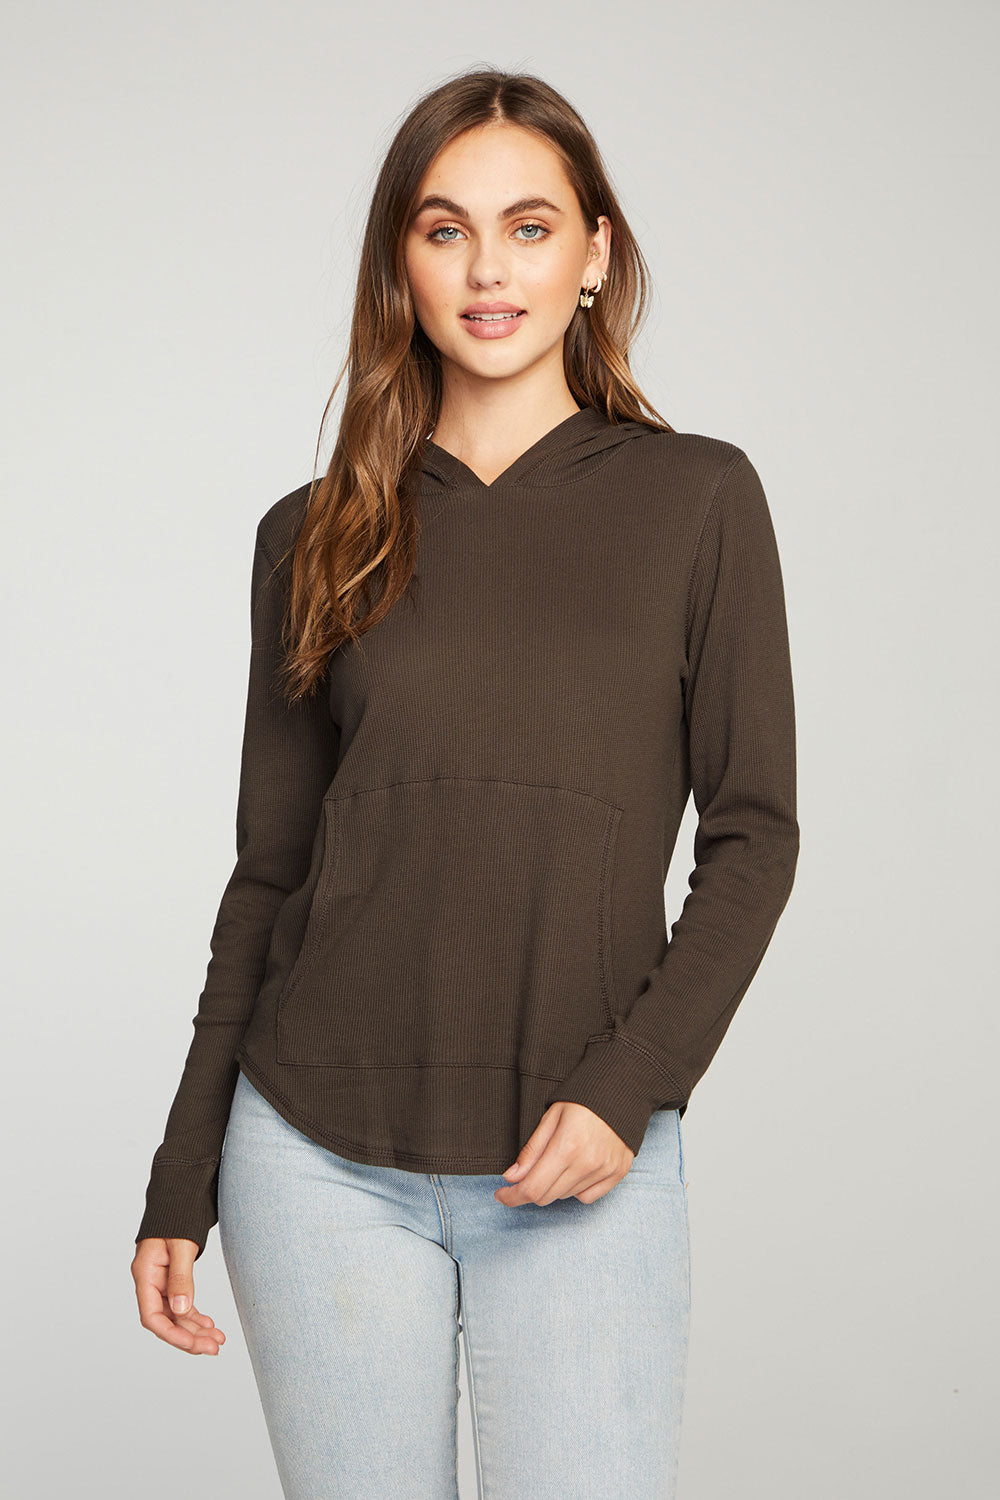 Heritage Waffle Long Sleeve Shirttail Kanga Pocket Pullover WOMENS - chaserbrand